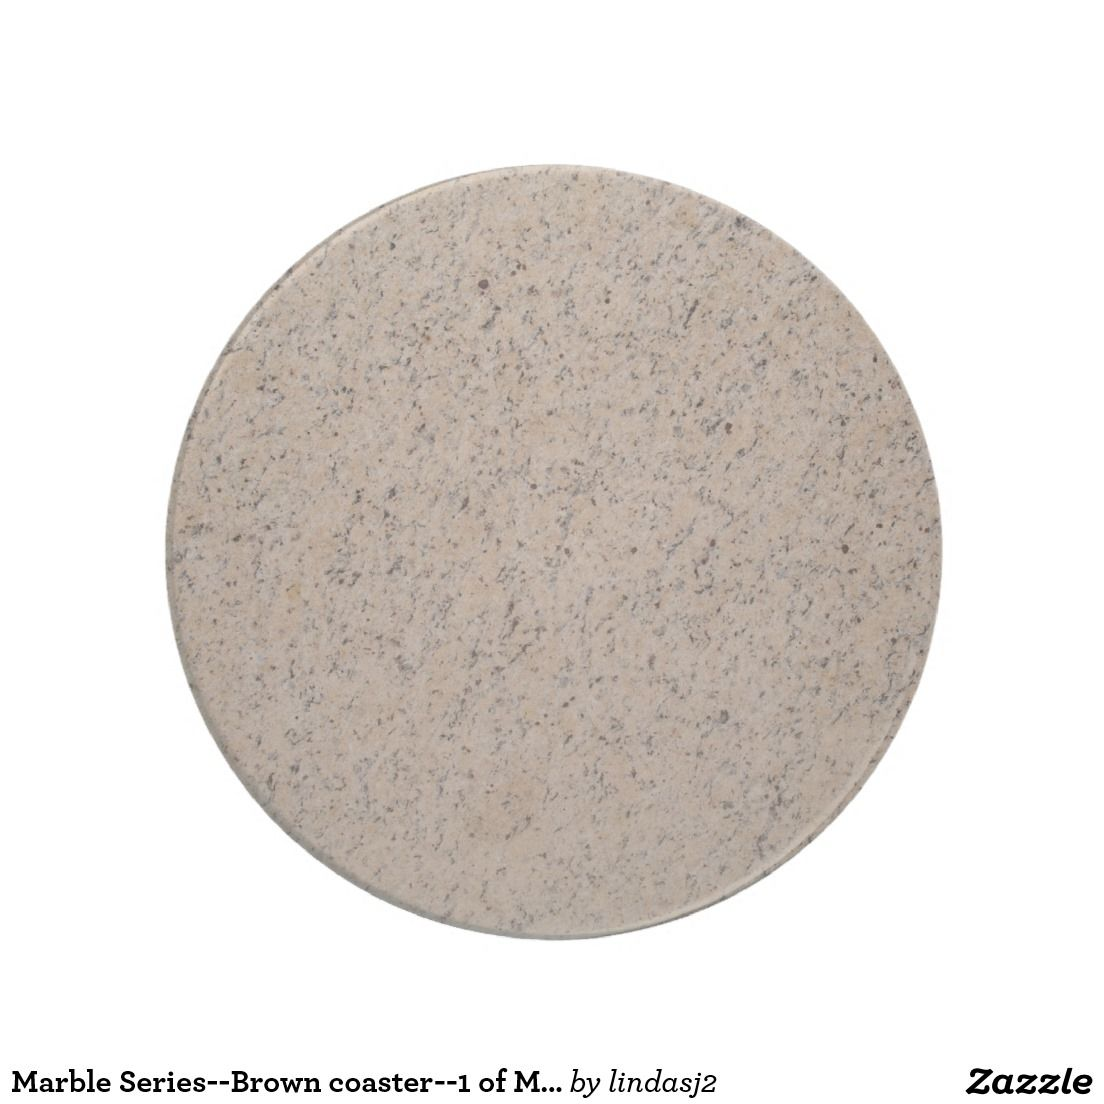 Marble Series--Brown coaster--1 of Many Colors Coaster